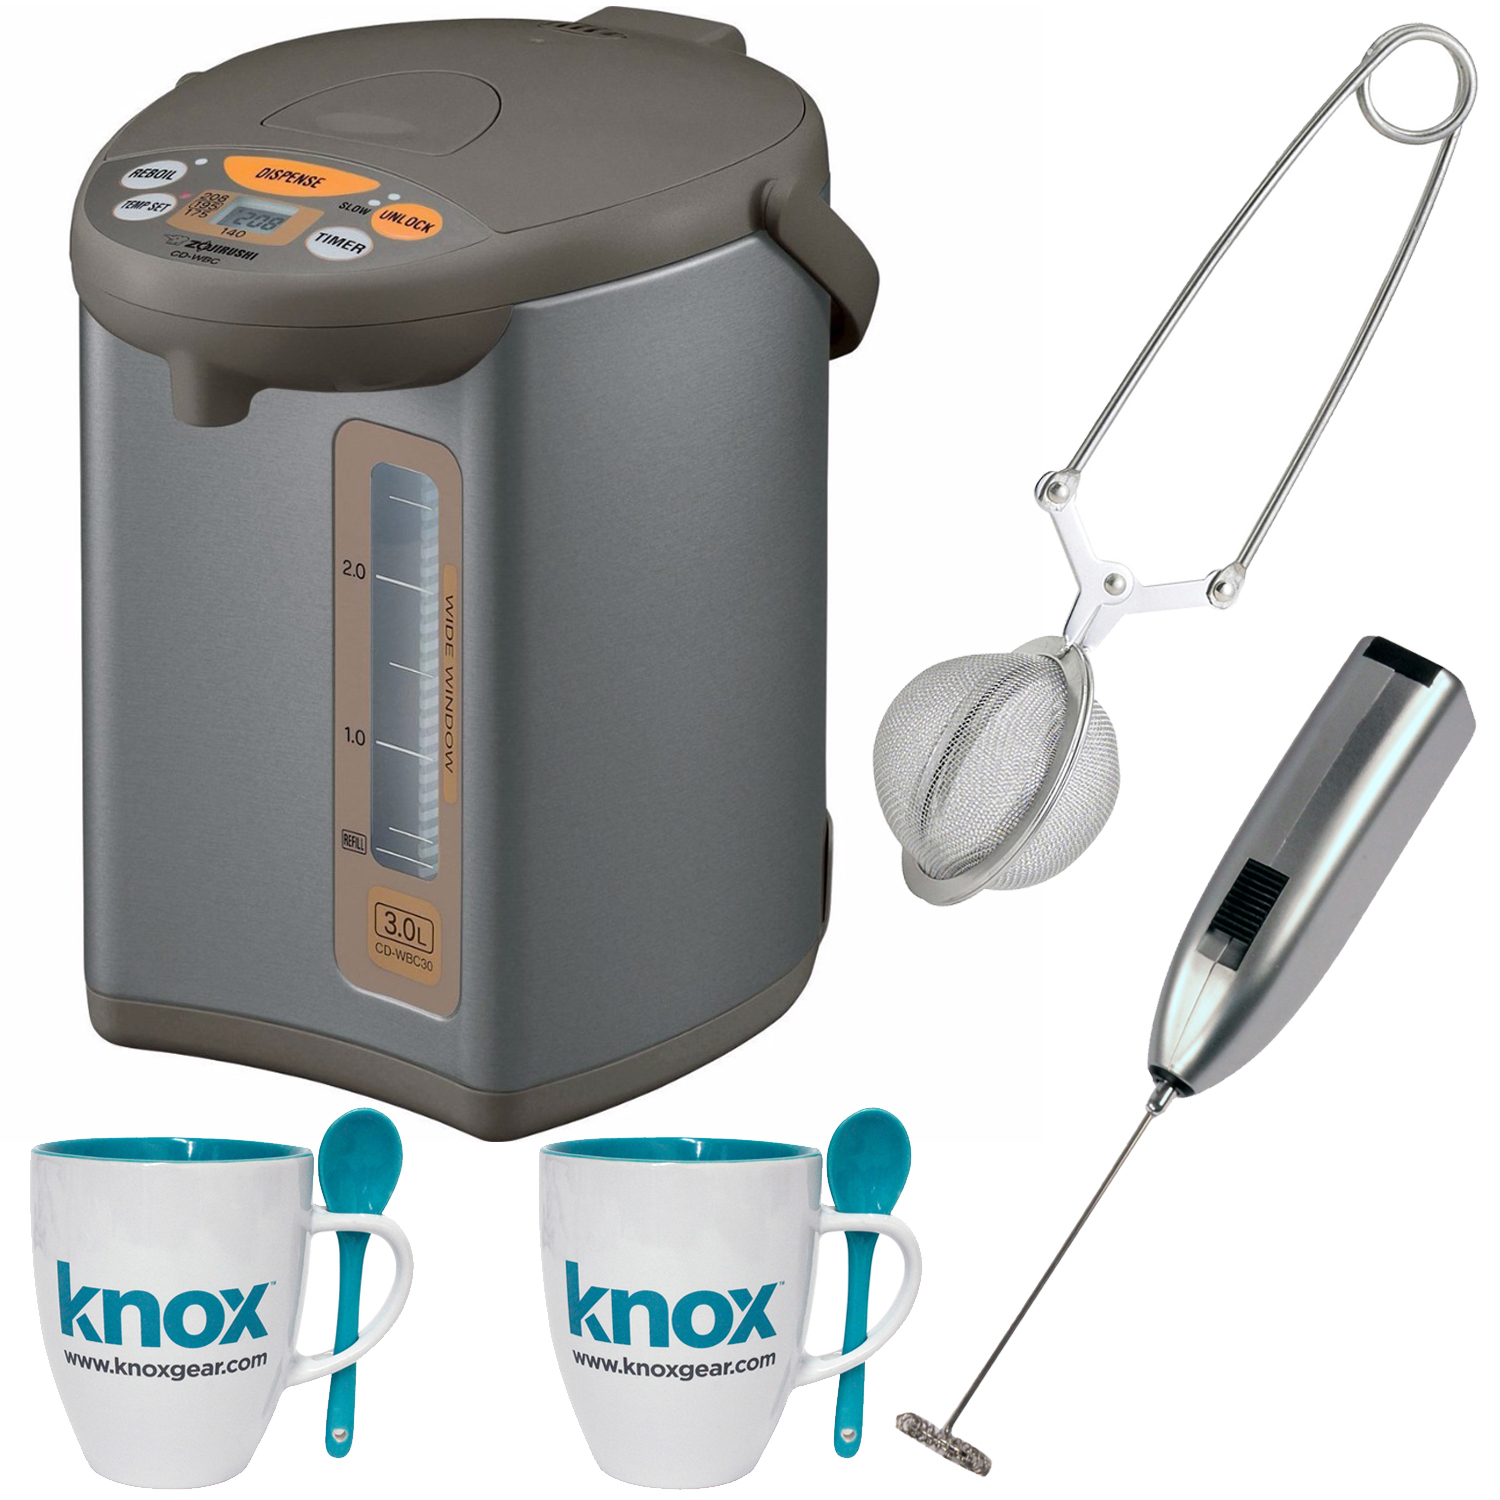 Zojirushi CDWCC30 Micom 3 Liter Water Boiler + Knox Mugs, Frother and Infuser